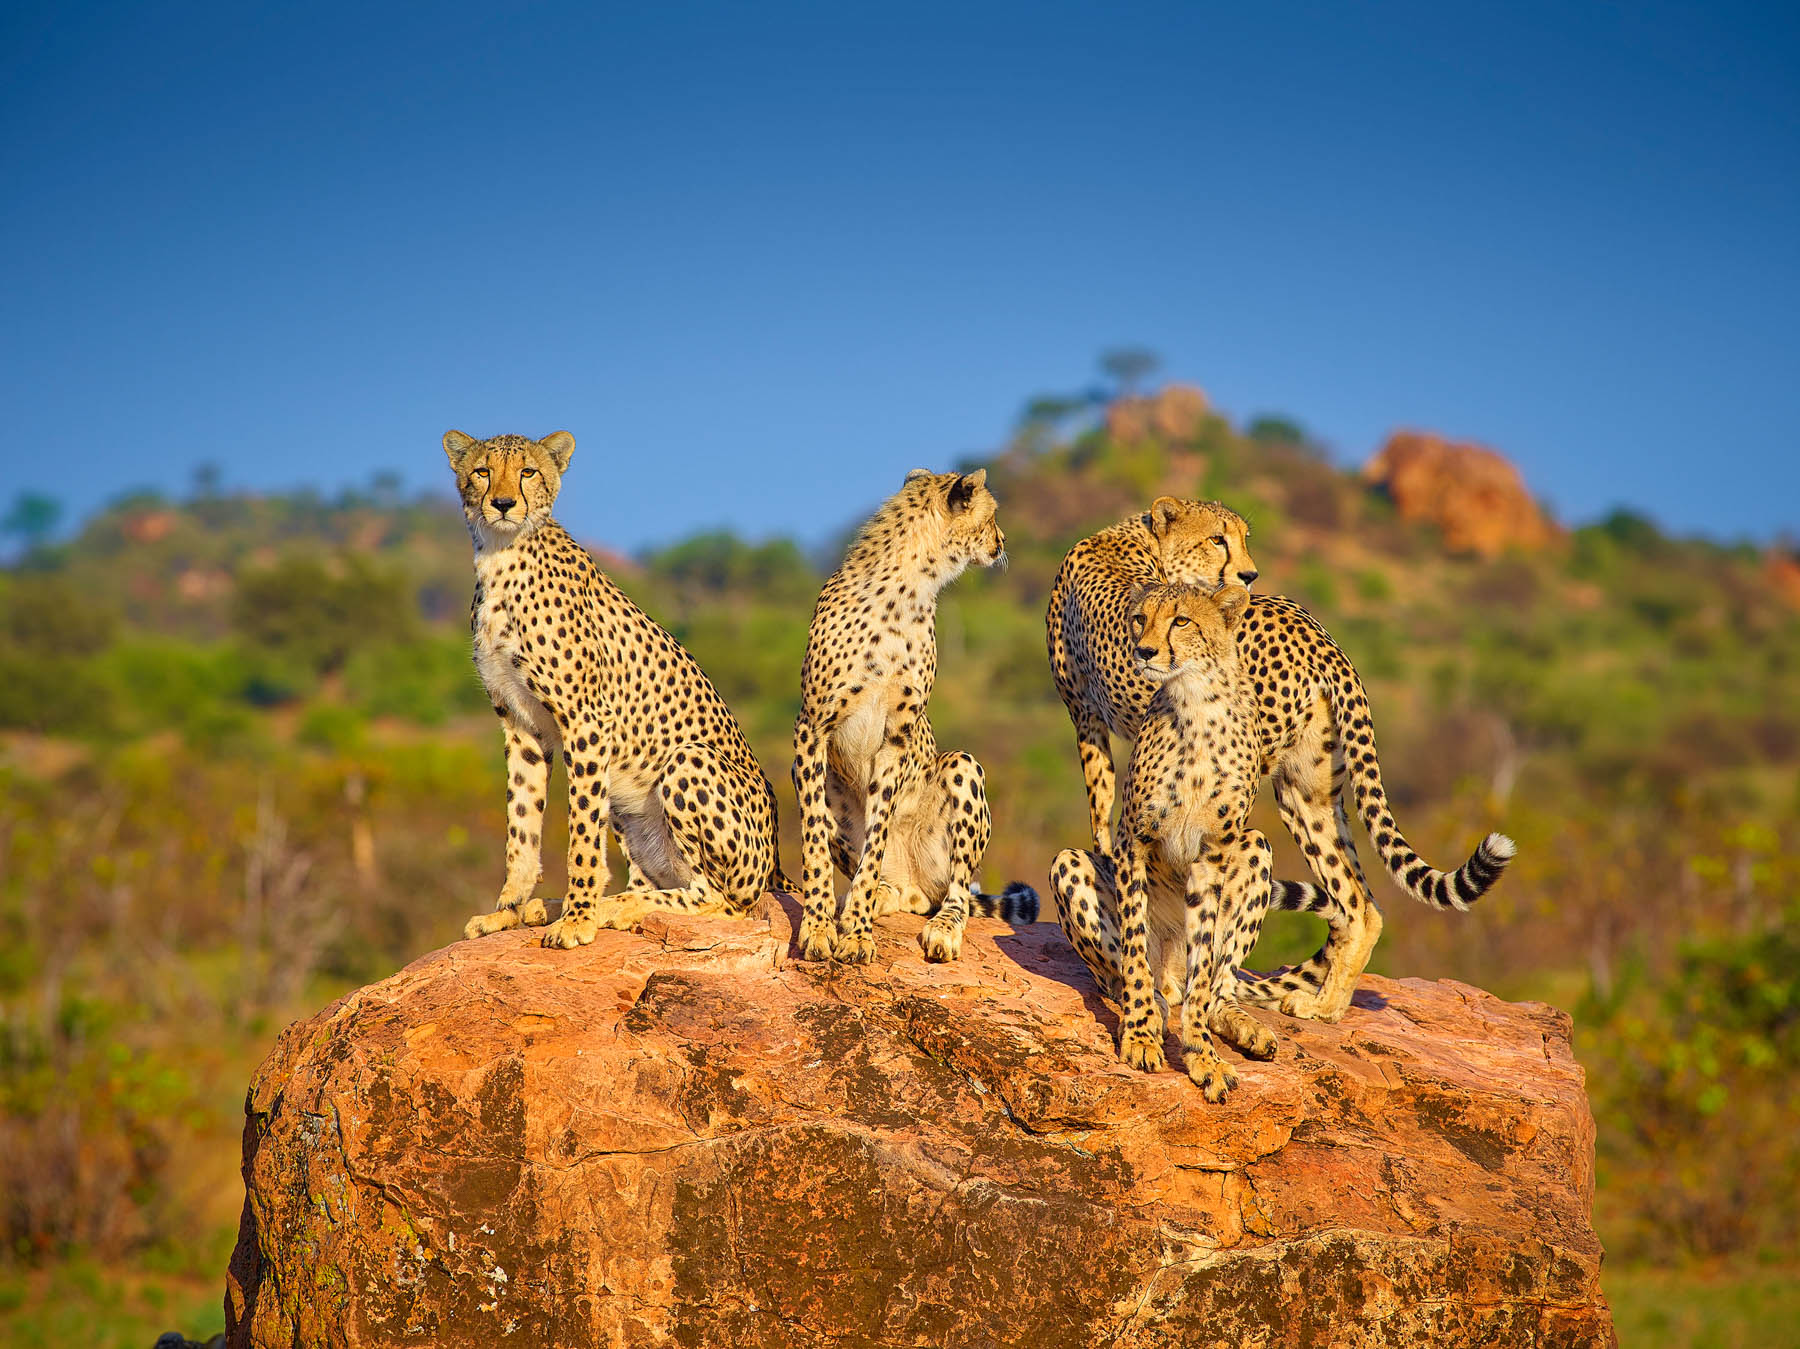 A family of cheetahs taking to the highground in search of food, Mashatu Game Reserve, Botswana, Africa.